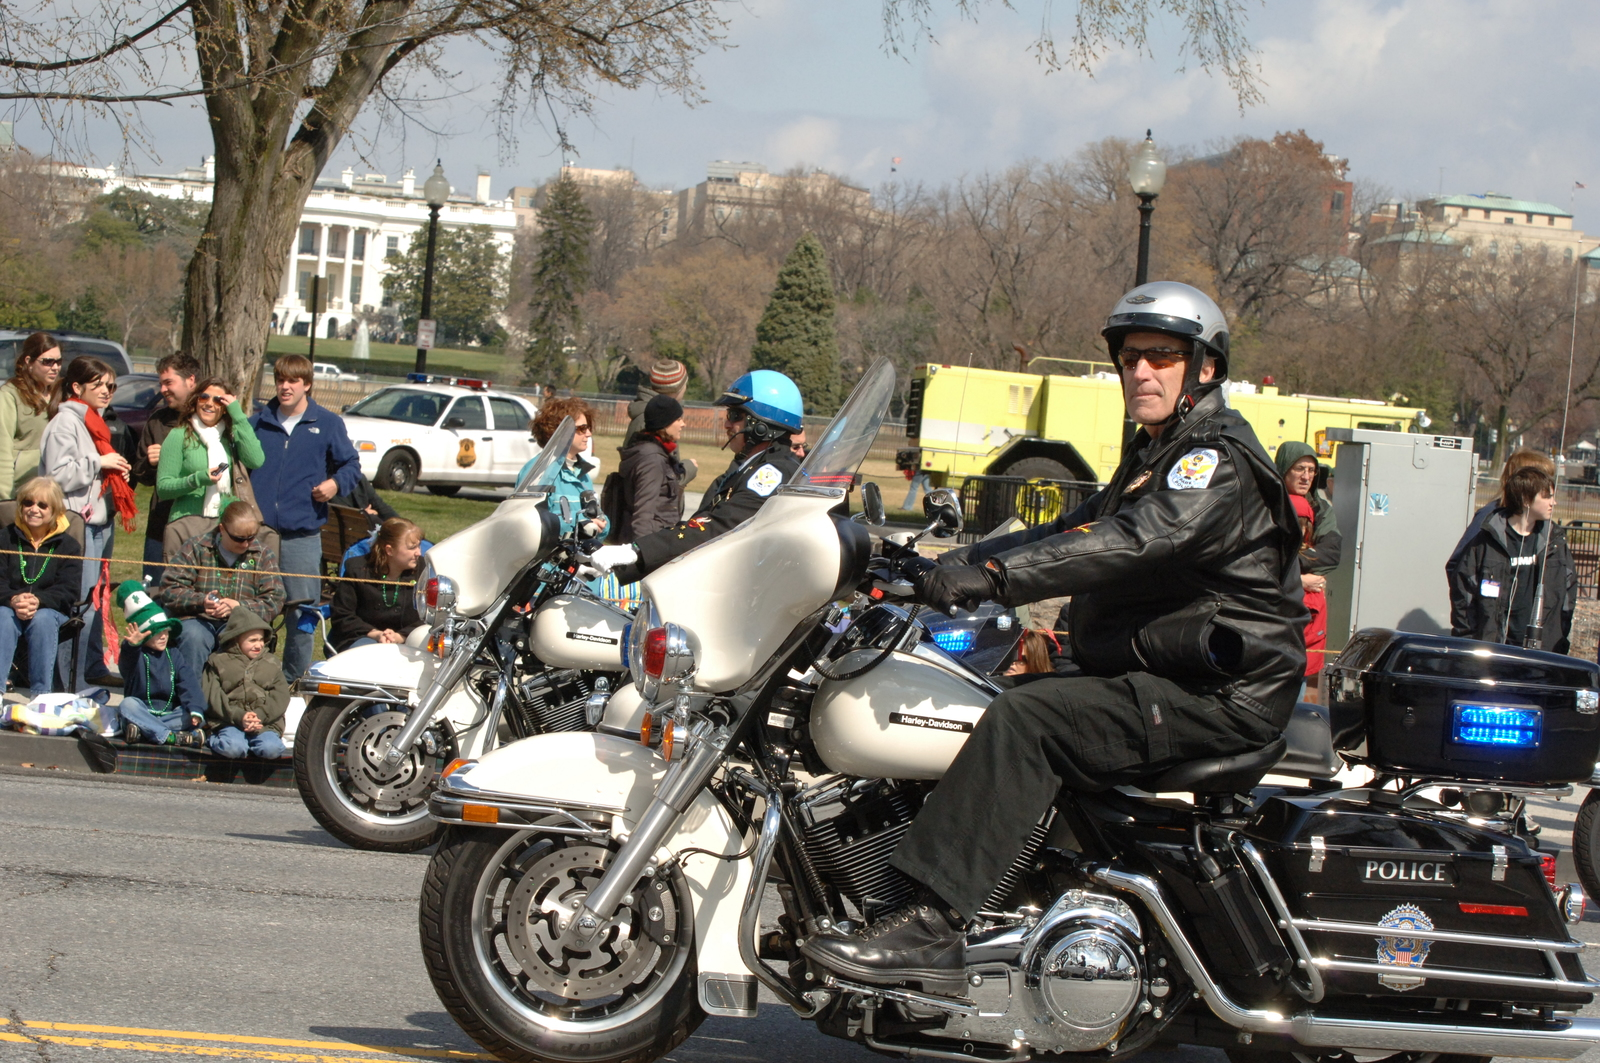 [Assignment: 48-DPA-03-16-08_SOI_K_St._Pat_Parade] Annual St. Patrick's Day Parade along Constitution Avenue, Washington, D.C., where Secretary Dirk Kempthorne [participated in the U.S. Park Police motorcycle procession] [48-DPA-03-16-08_SOI_K_St_Pat_Parade_IOD_2396.JPG]